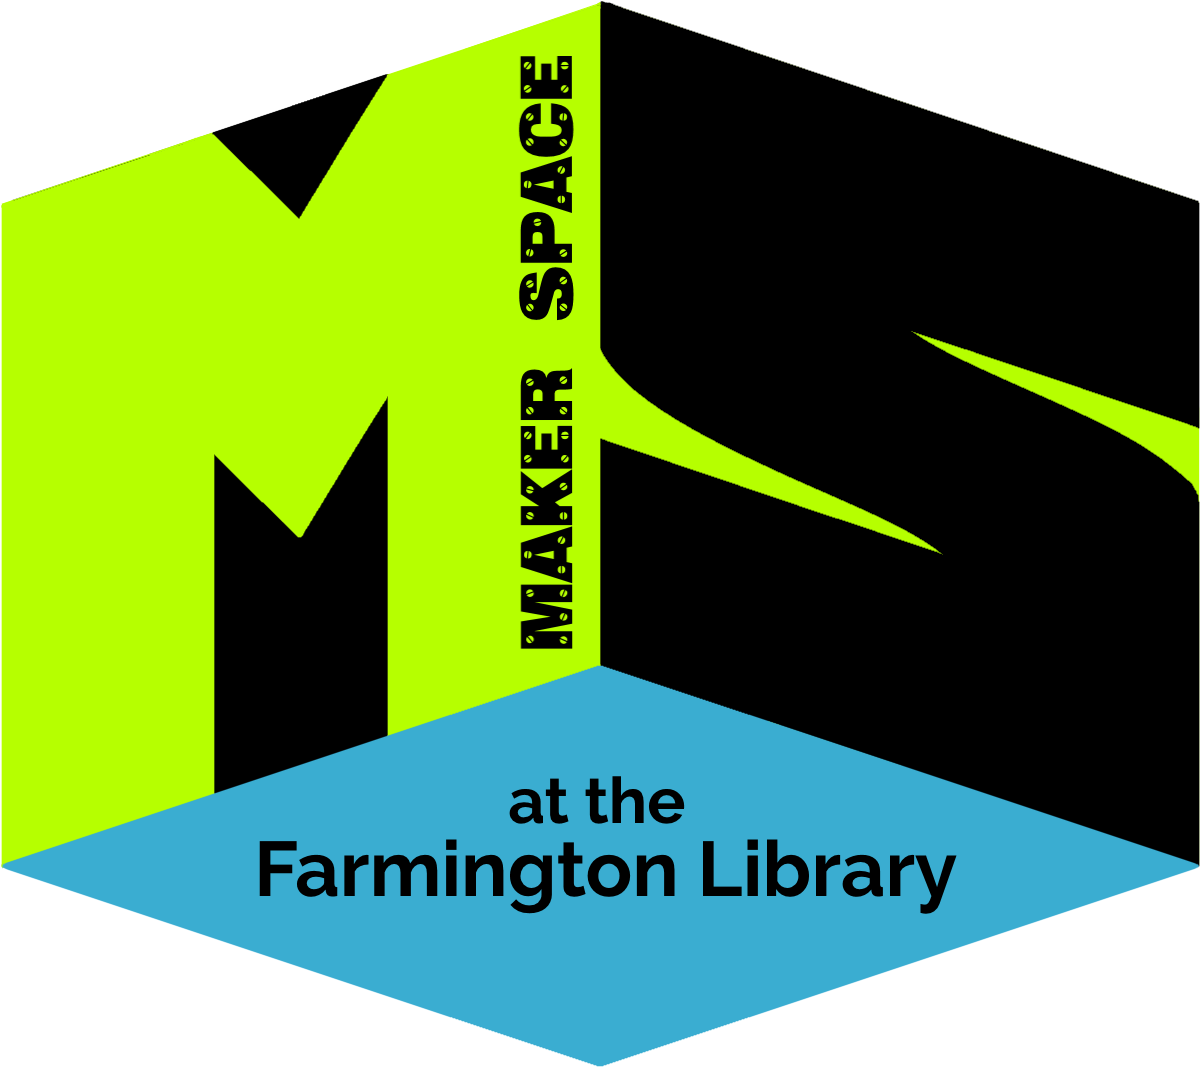 The Maker Space At The Farmington Library Is A Place - Farmington Library (1298x1160), Png Download